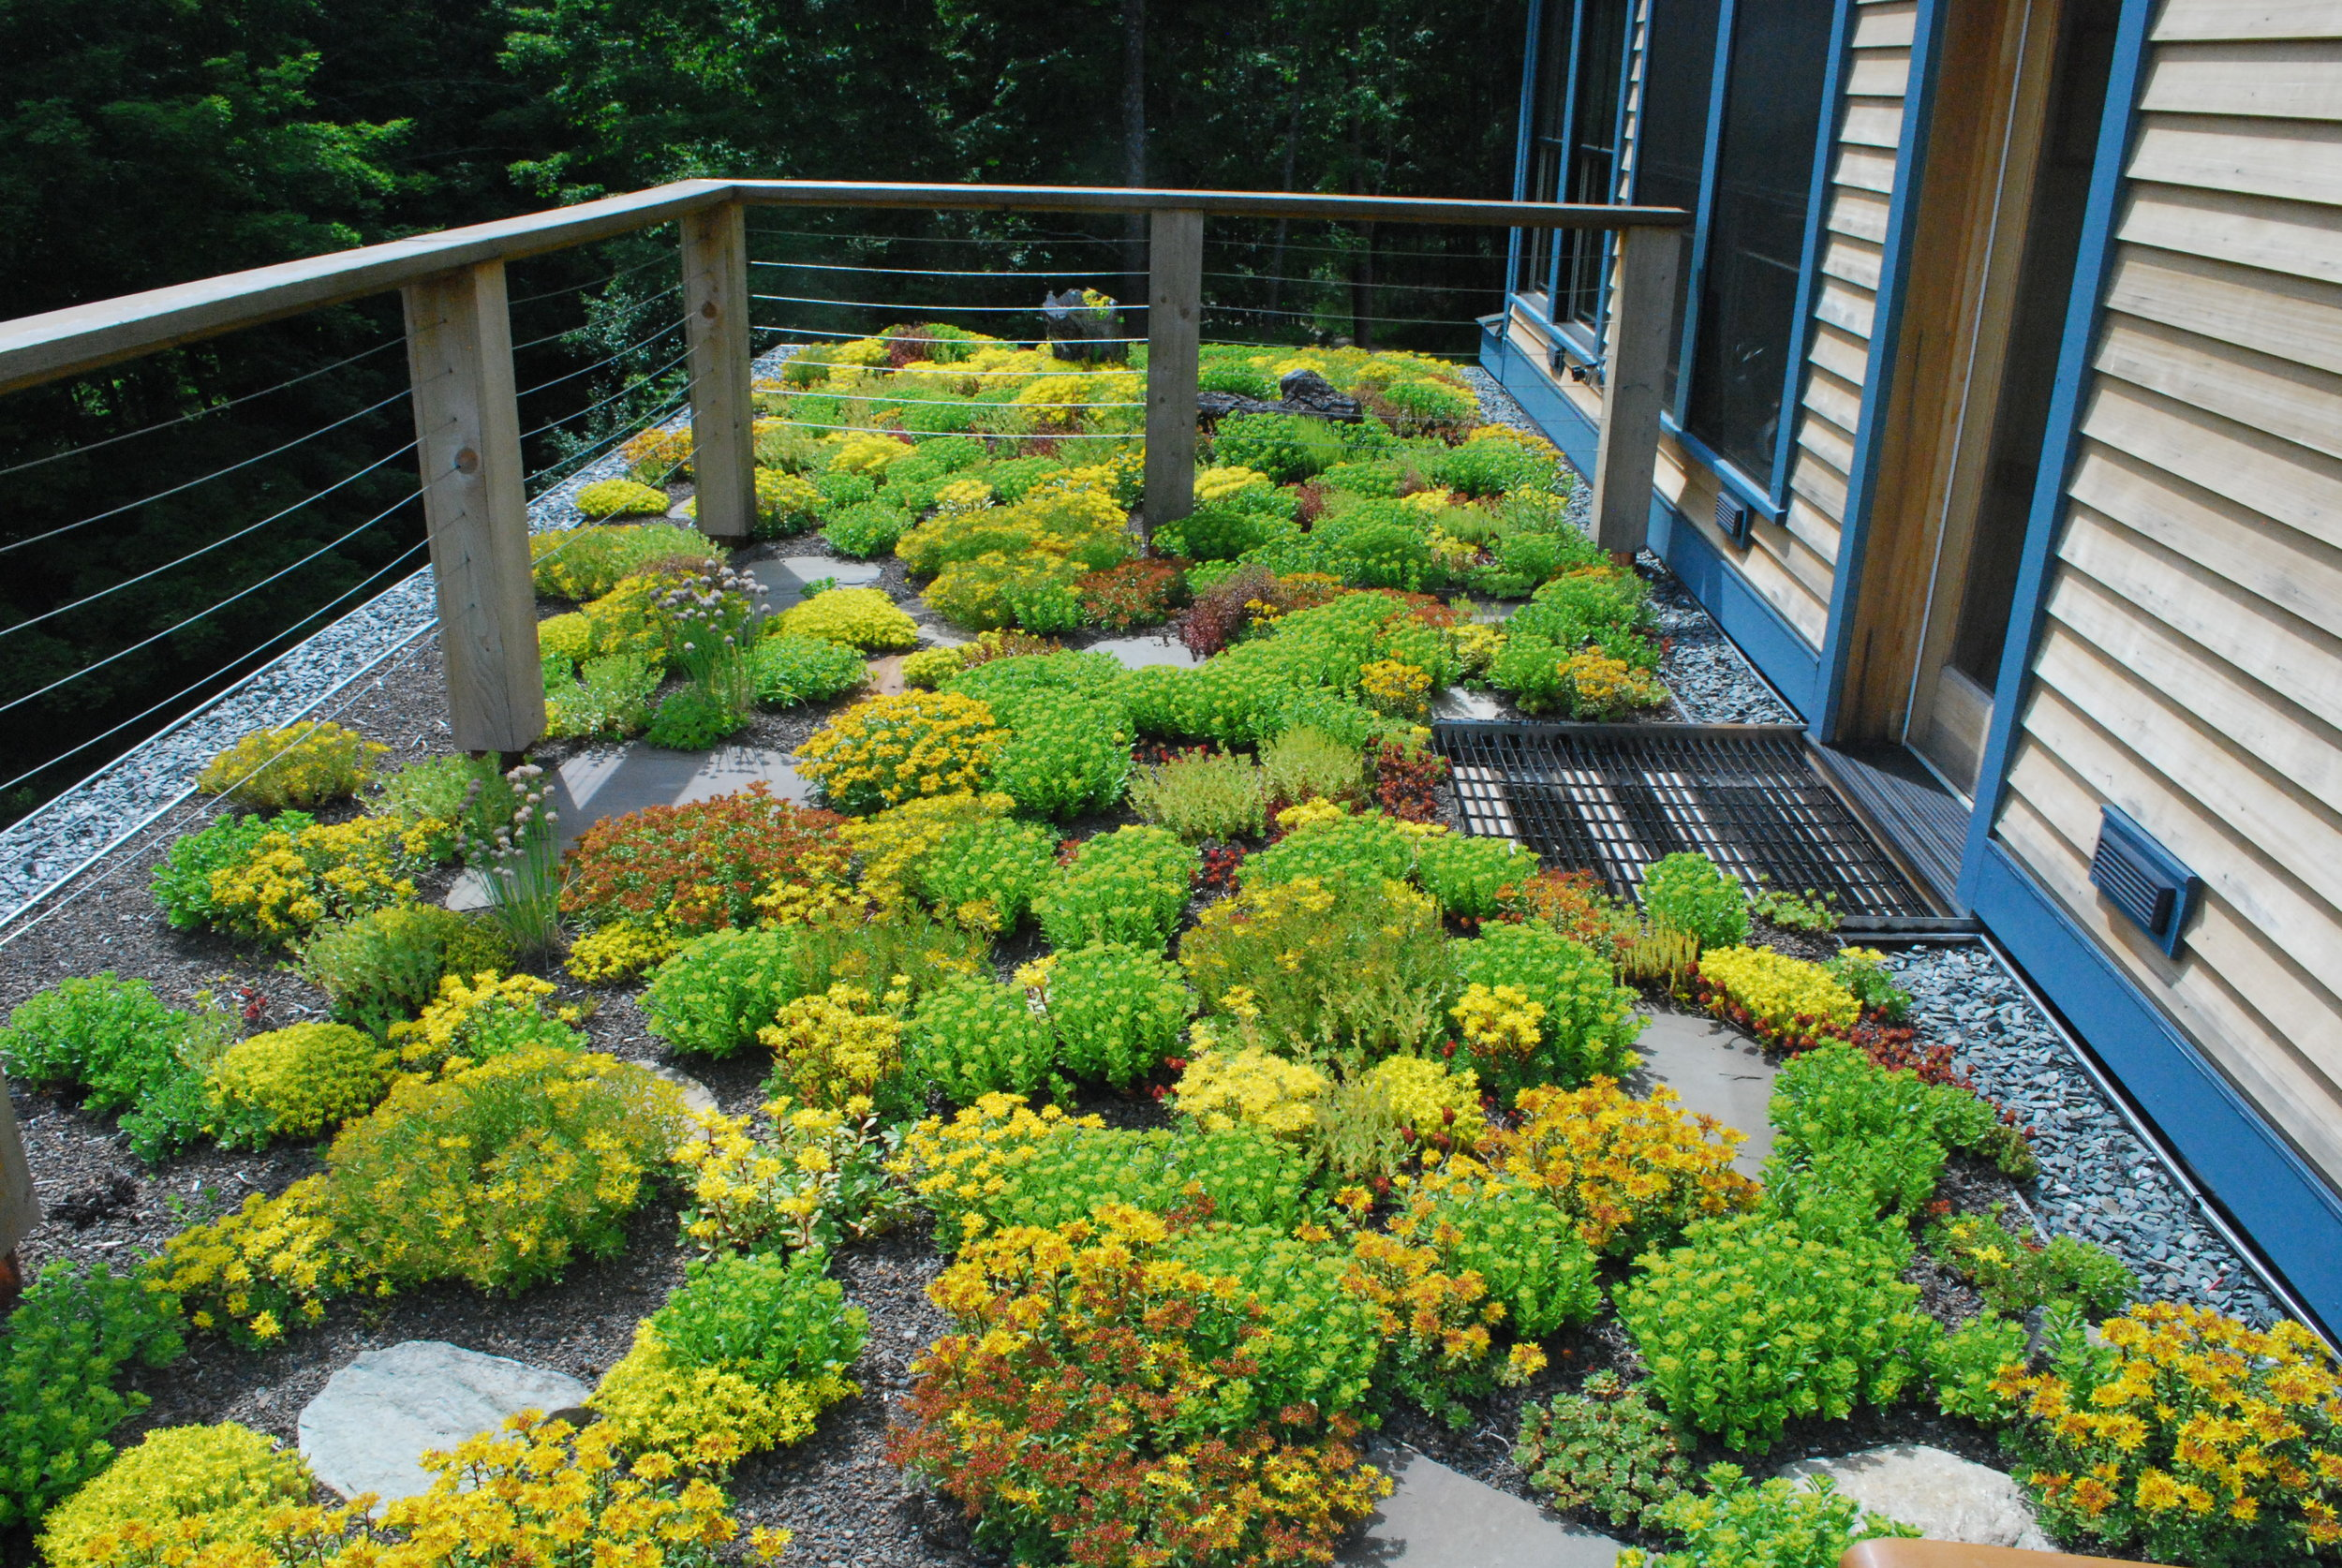 recover-green-roofs-master-balcony-vermont-2014-2.JPG